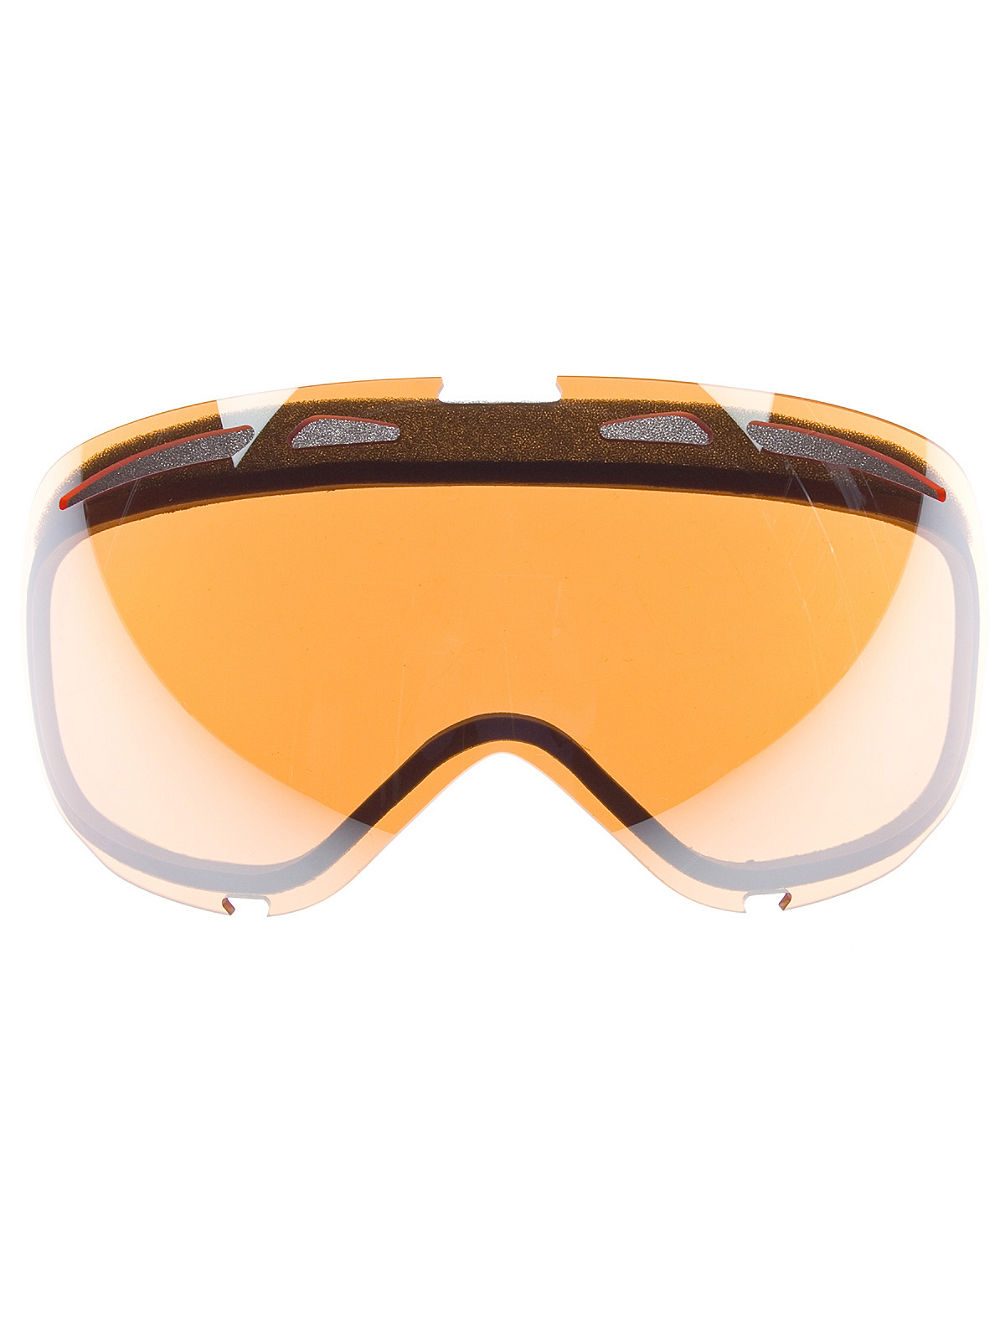 oakley elevate goggles 7xfx  oakley elevate lenses